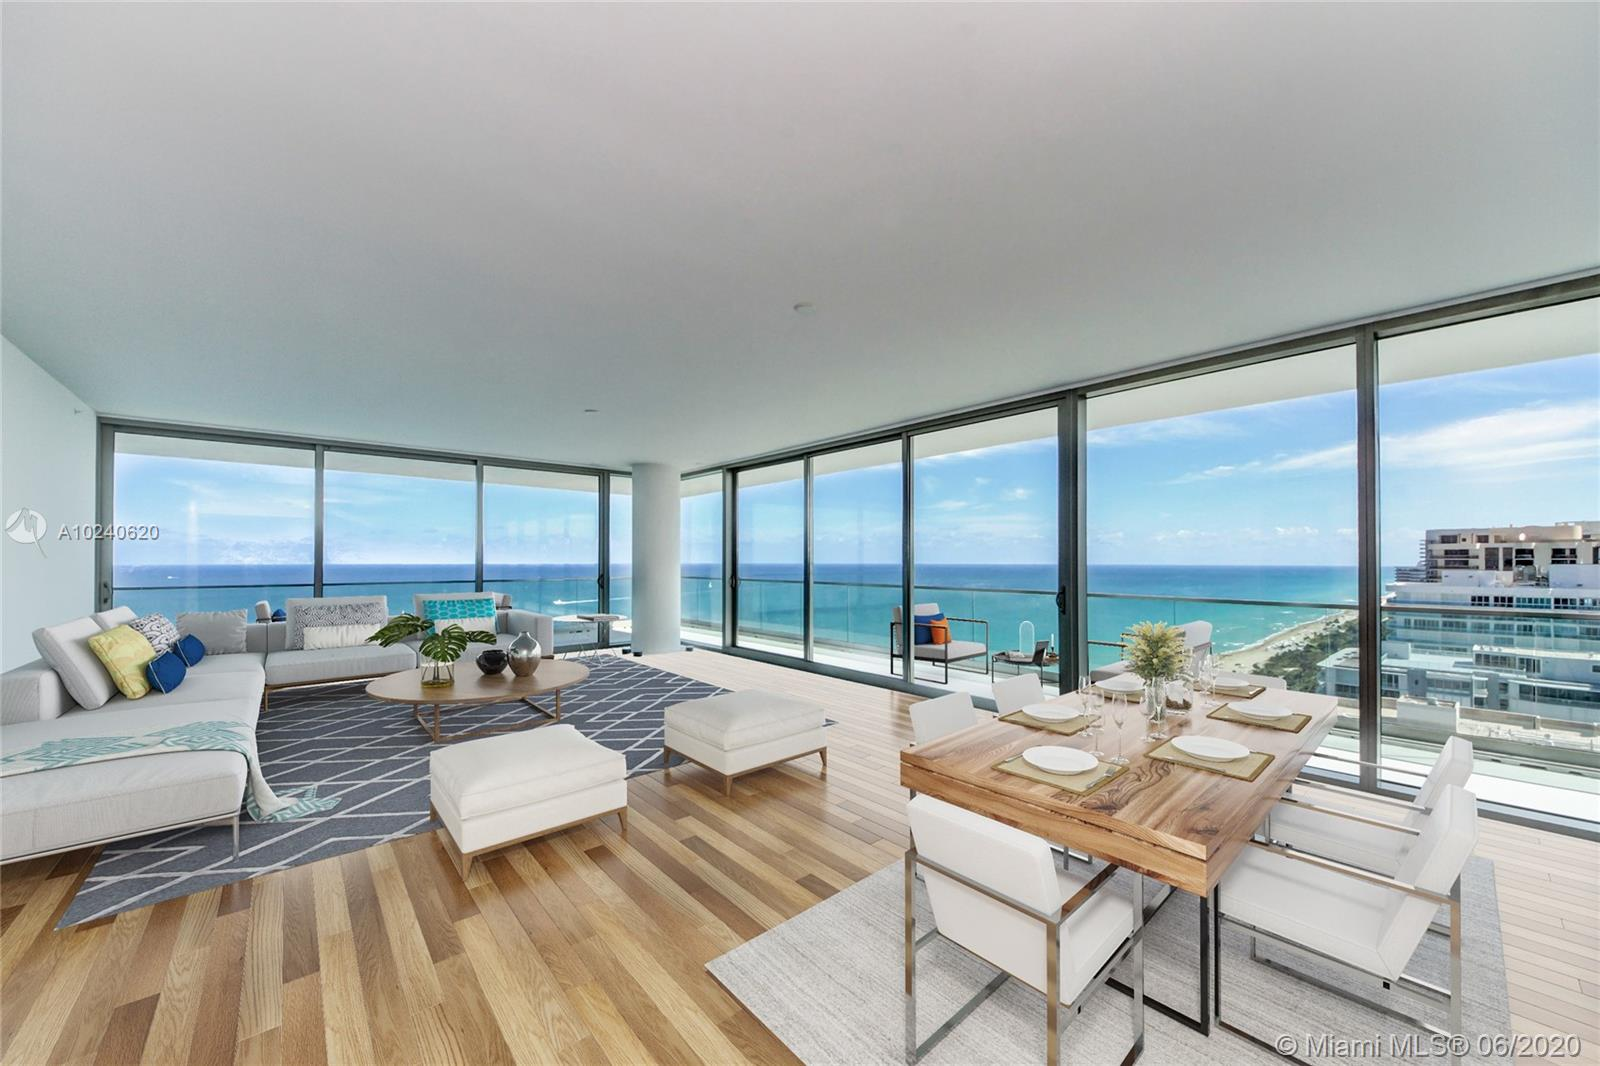 image #1 of property, 10201 Collins Ave 2401 S, Unit 2401S